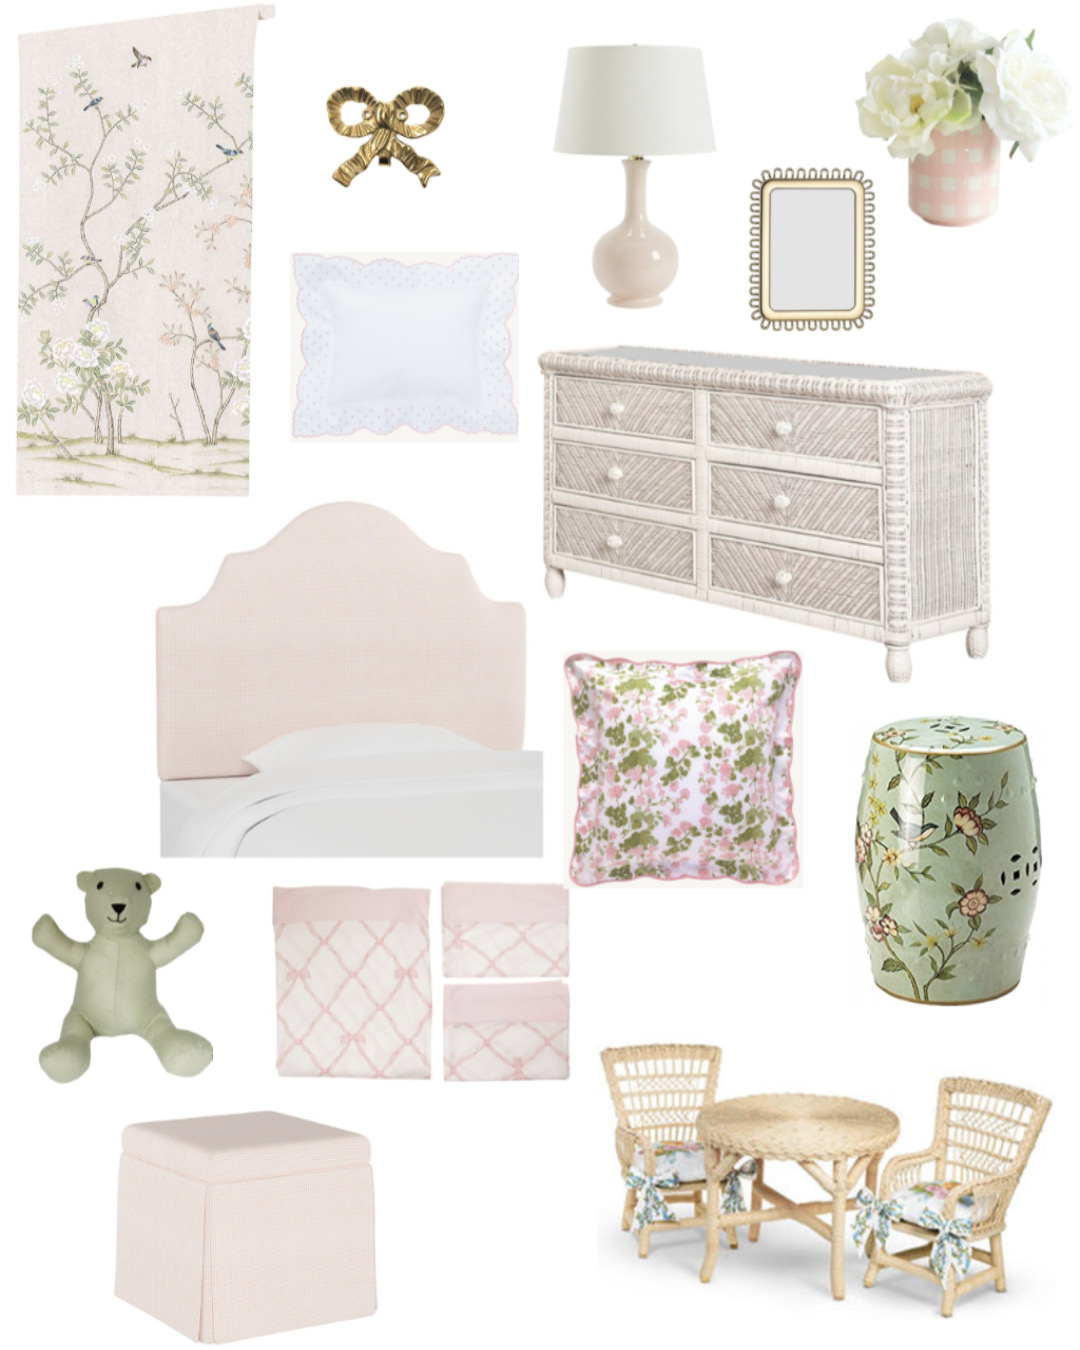 Big GIrl Room Inspiration